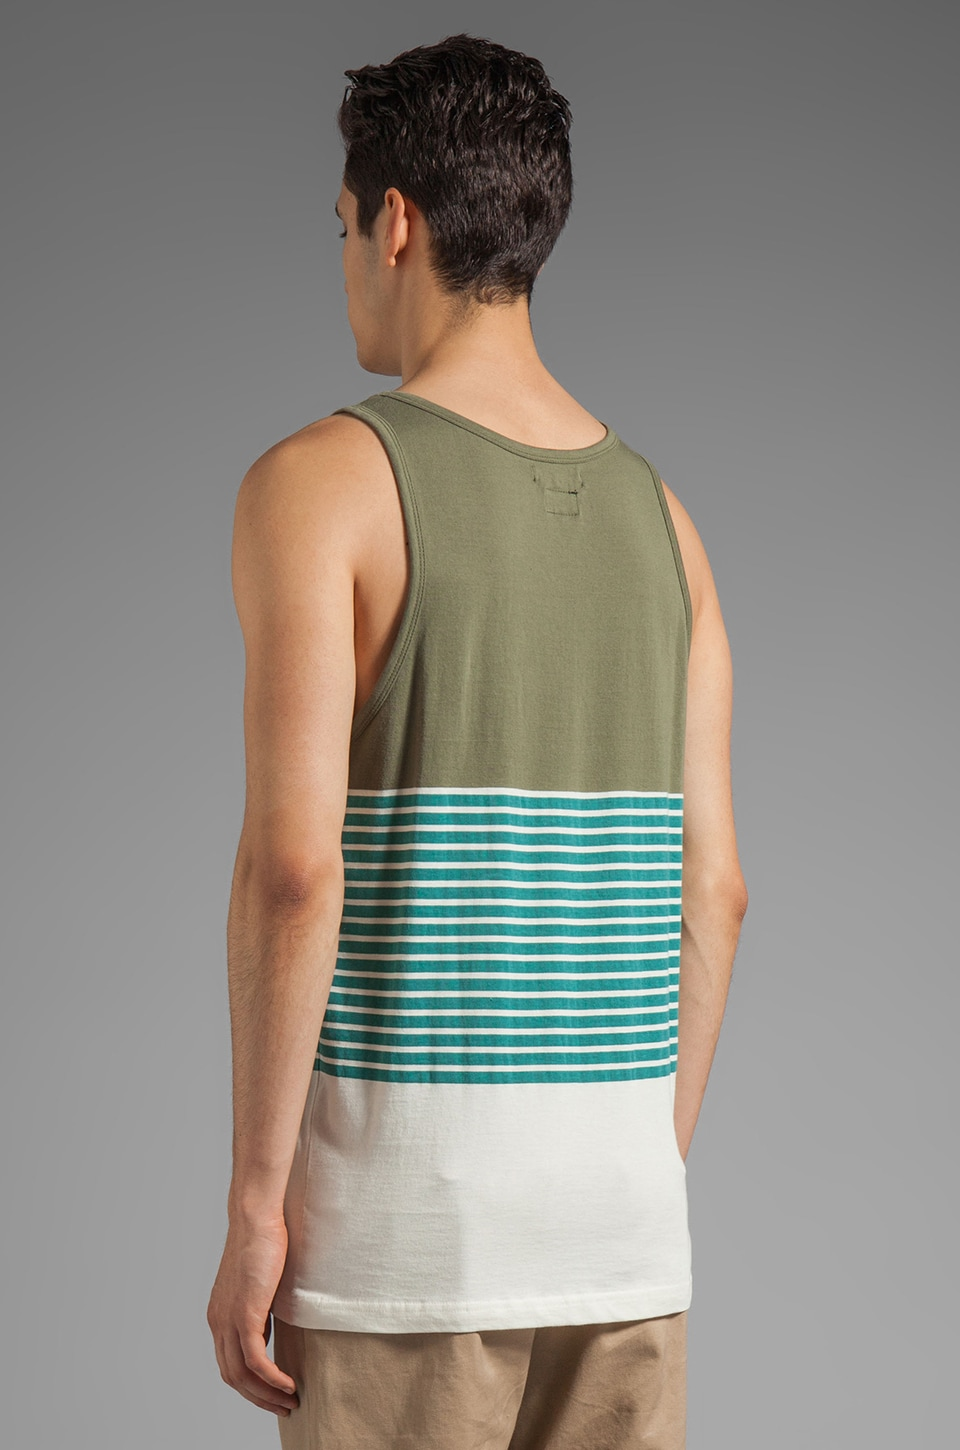 RVCA Layer Tank in Green Moss